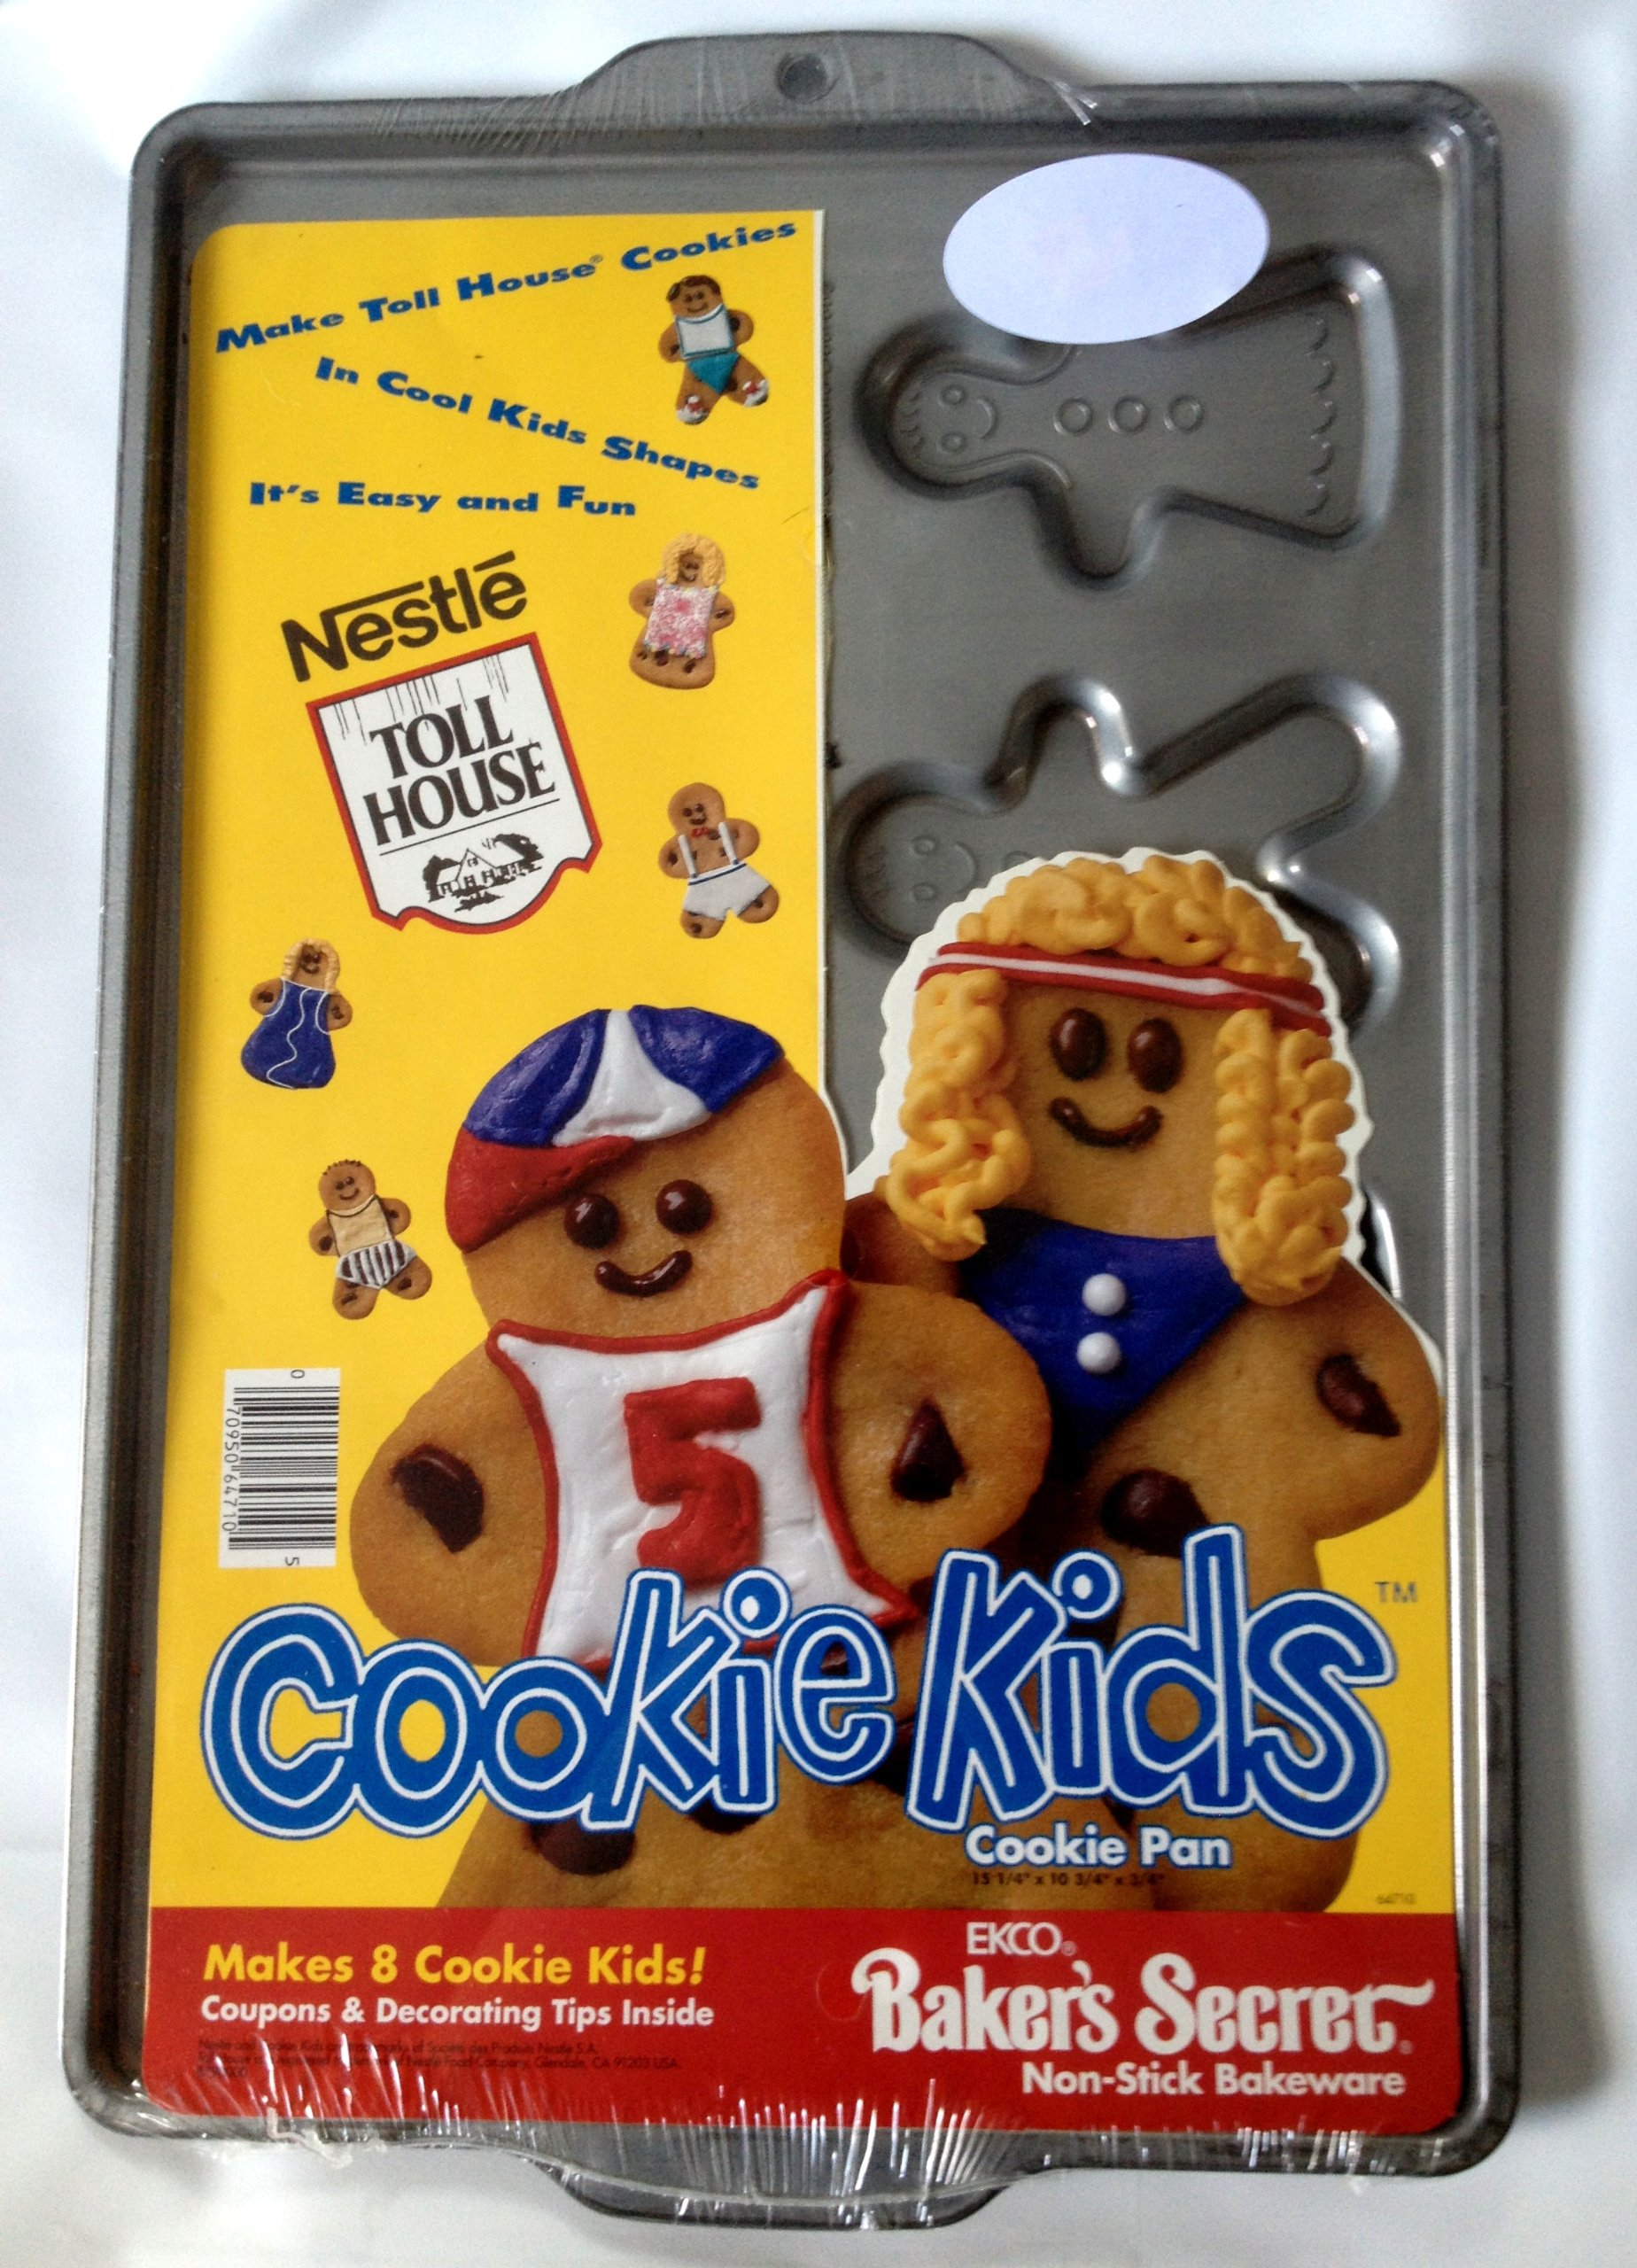 Nestle Toll House Cookie Kids Non-stick Cookie Pan 15 1/4 X10 3/4 3/4